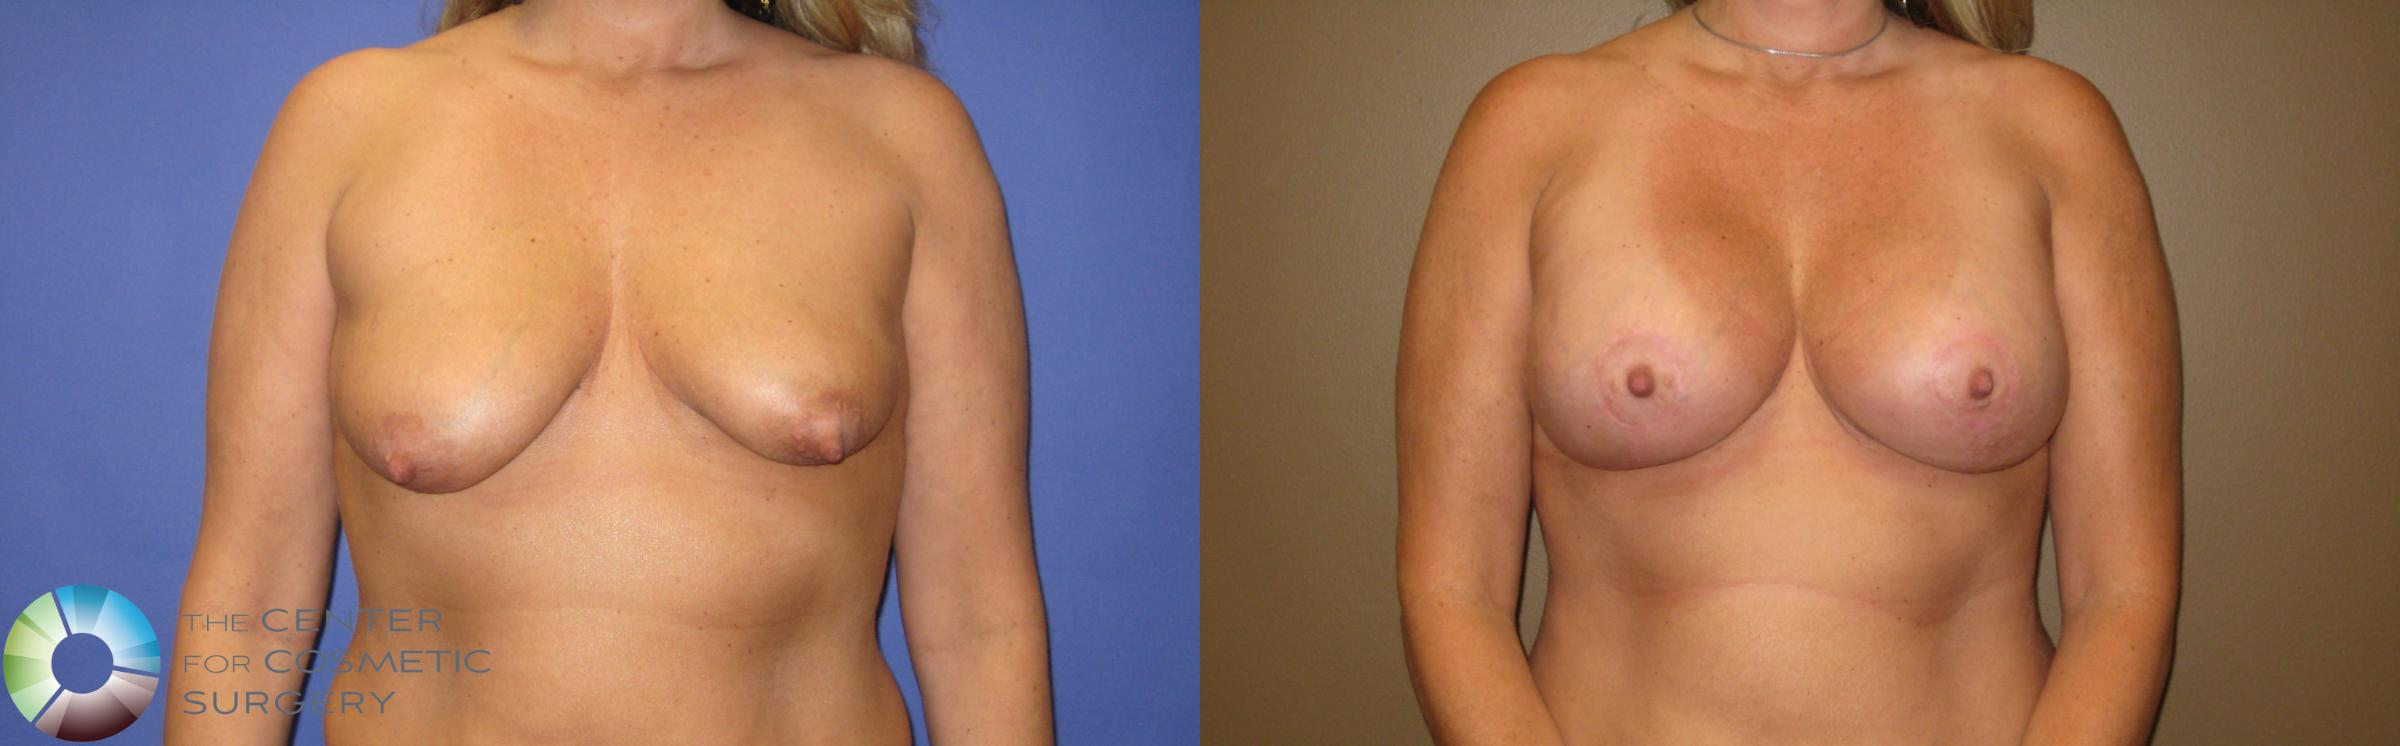 Breast Lift Case 375 Before & After View #1 | Golden, CO | The Center for Cosmetic Surgery